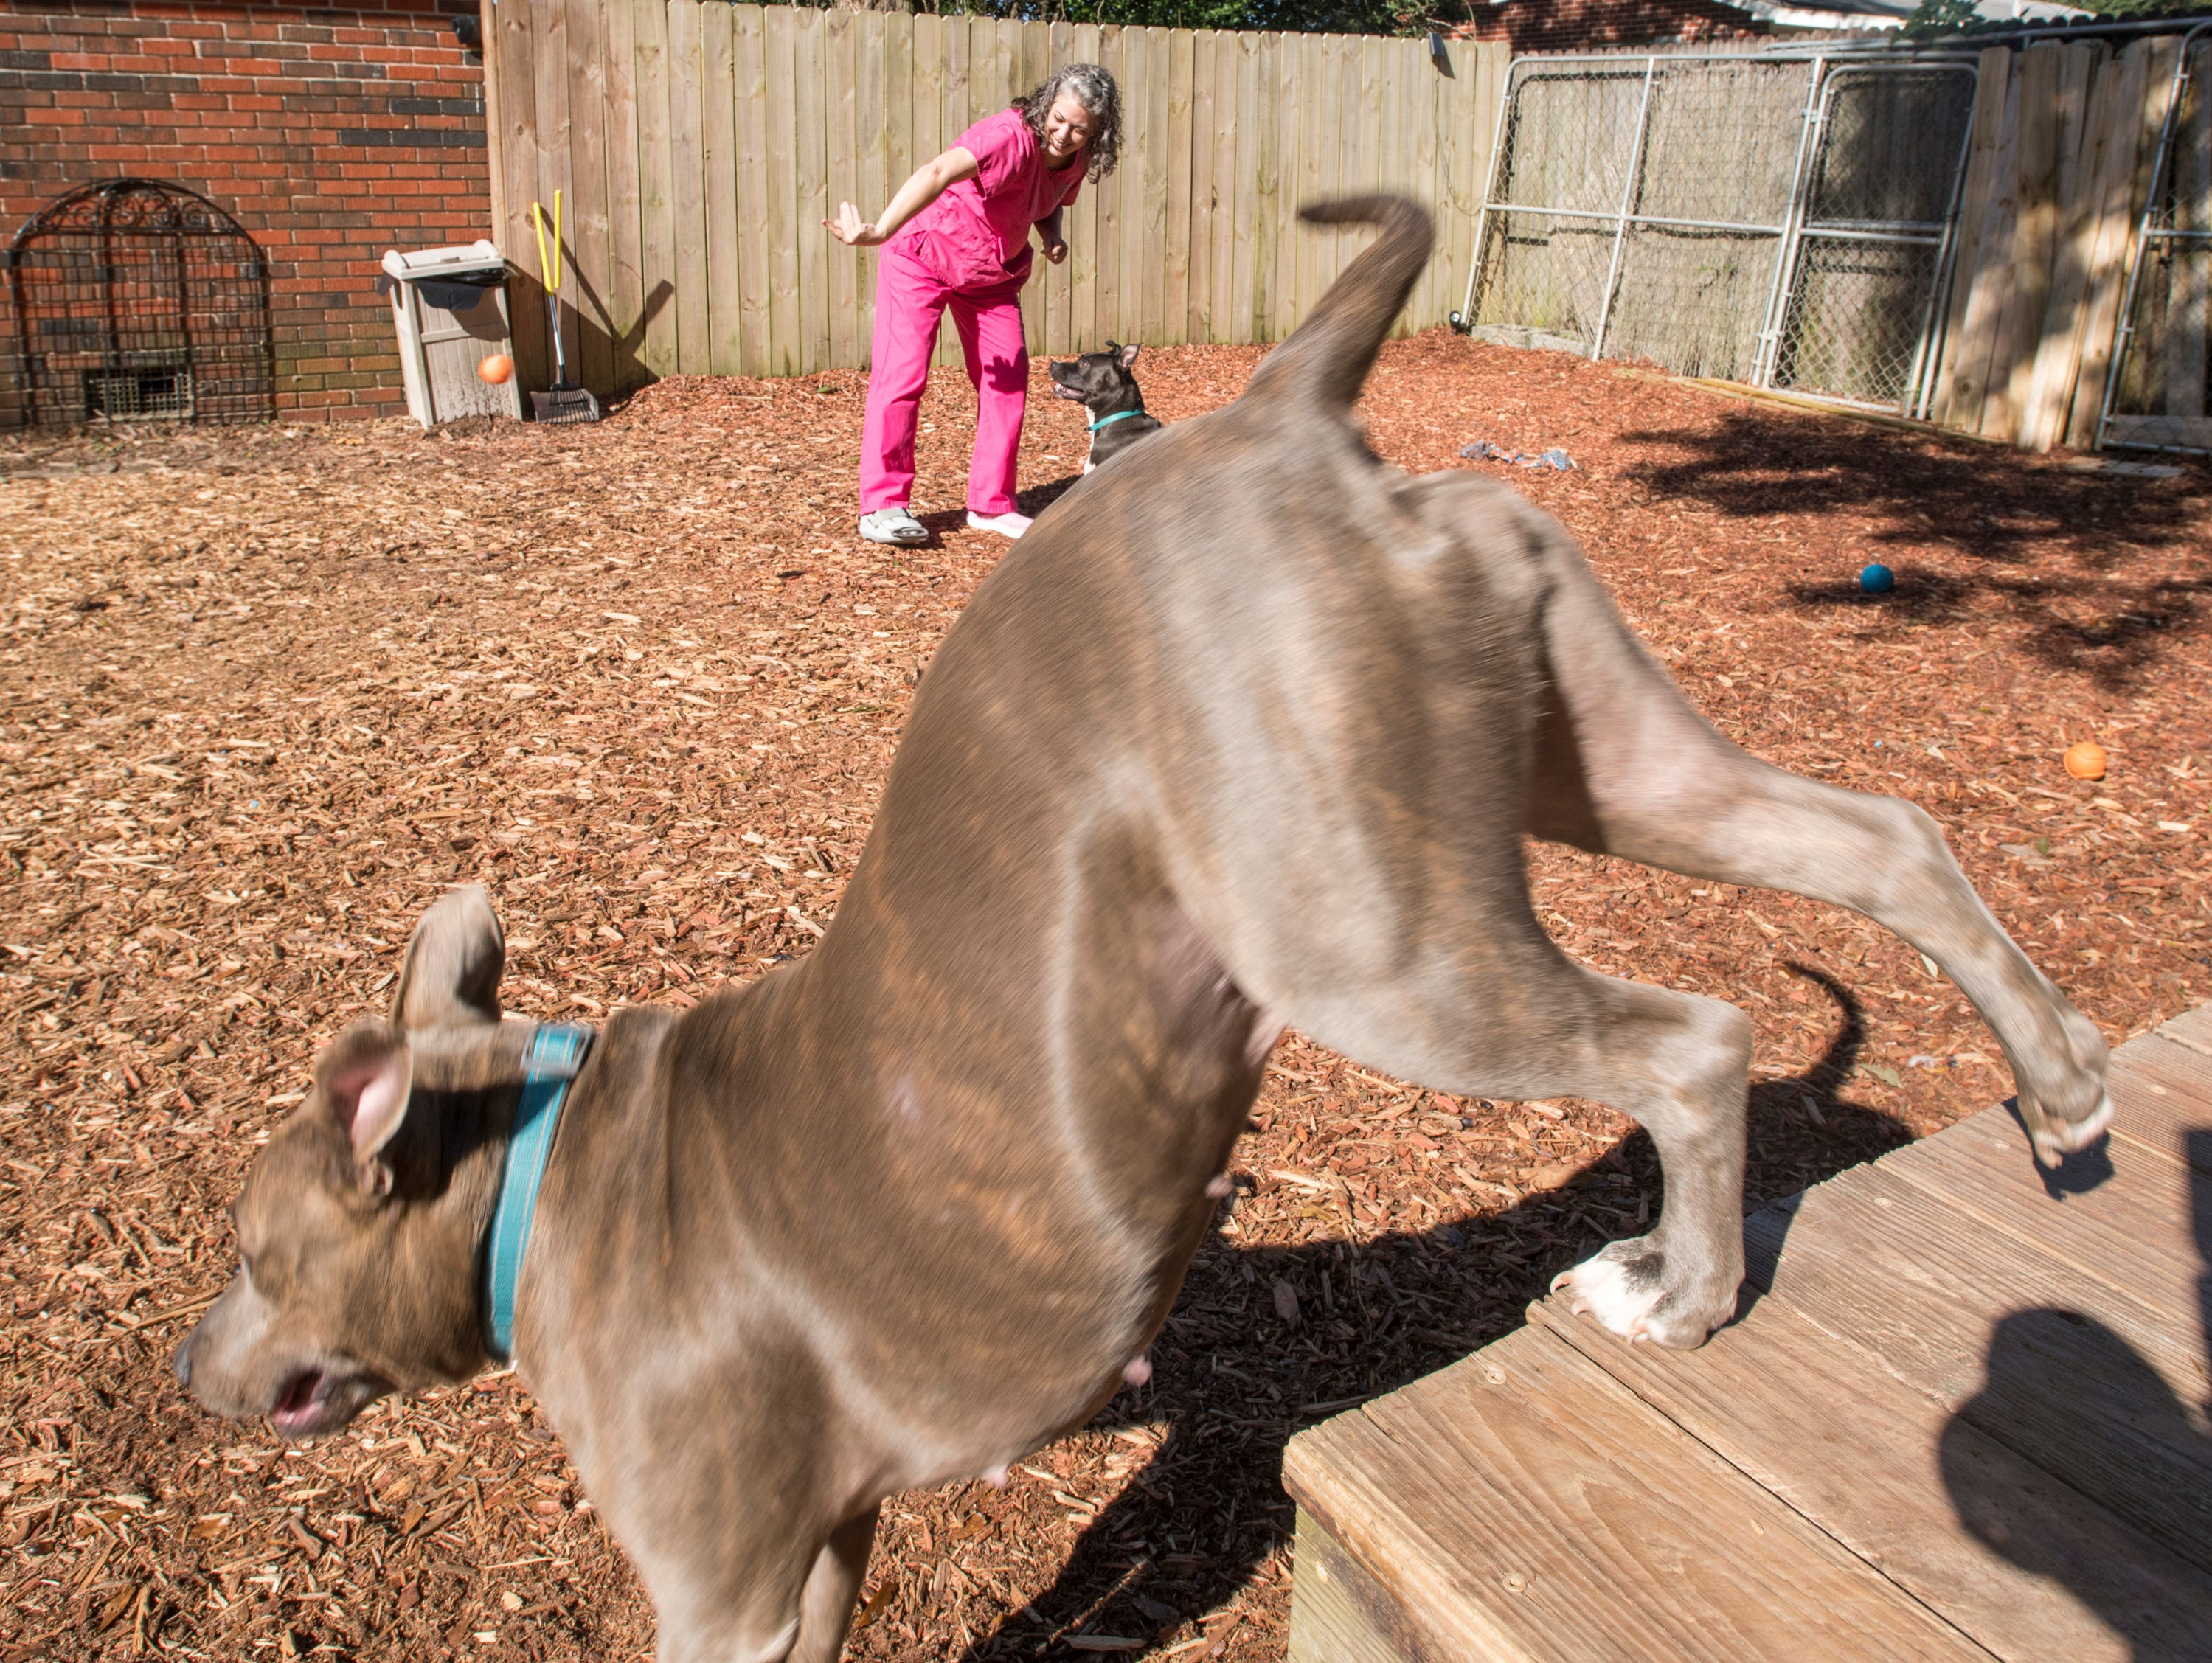 Carrie Turner plays with Ducky, top, and Marlena in the backyard at the Phoenix Rising Rescue & Adoption Center in Cantonment on Tuesday, December 4, 2018.